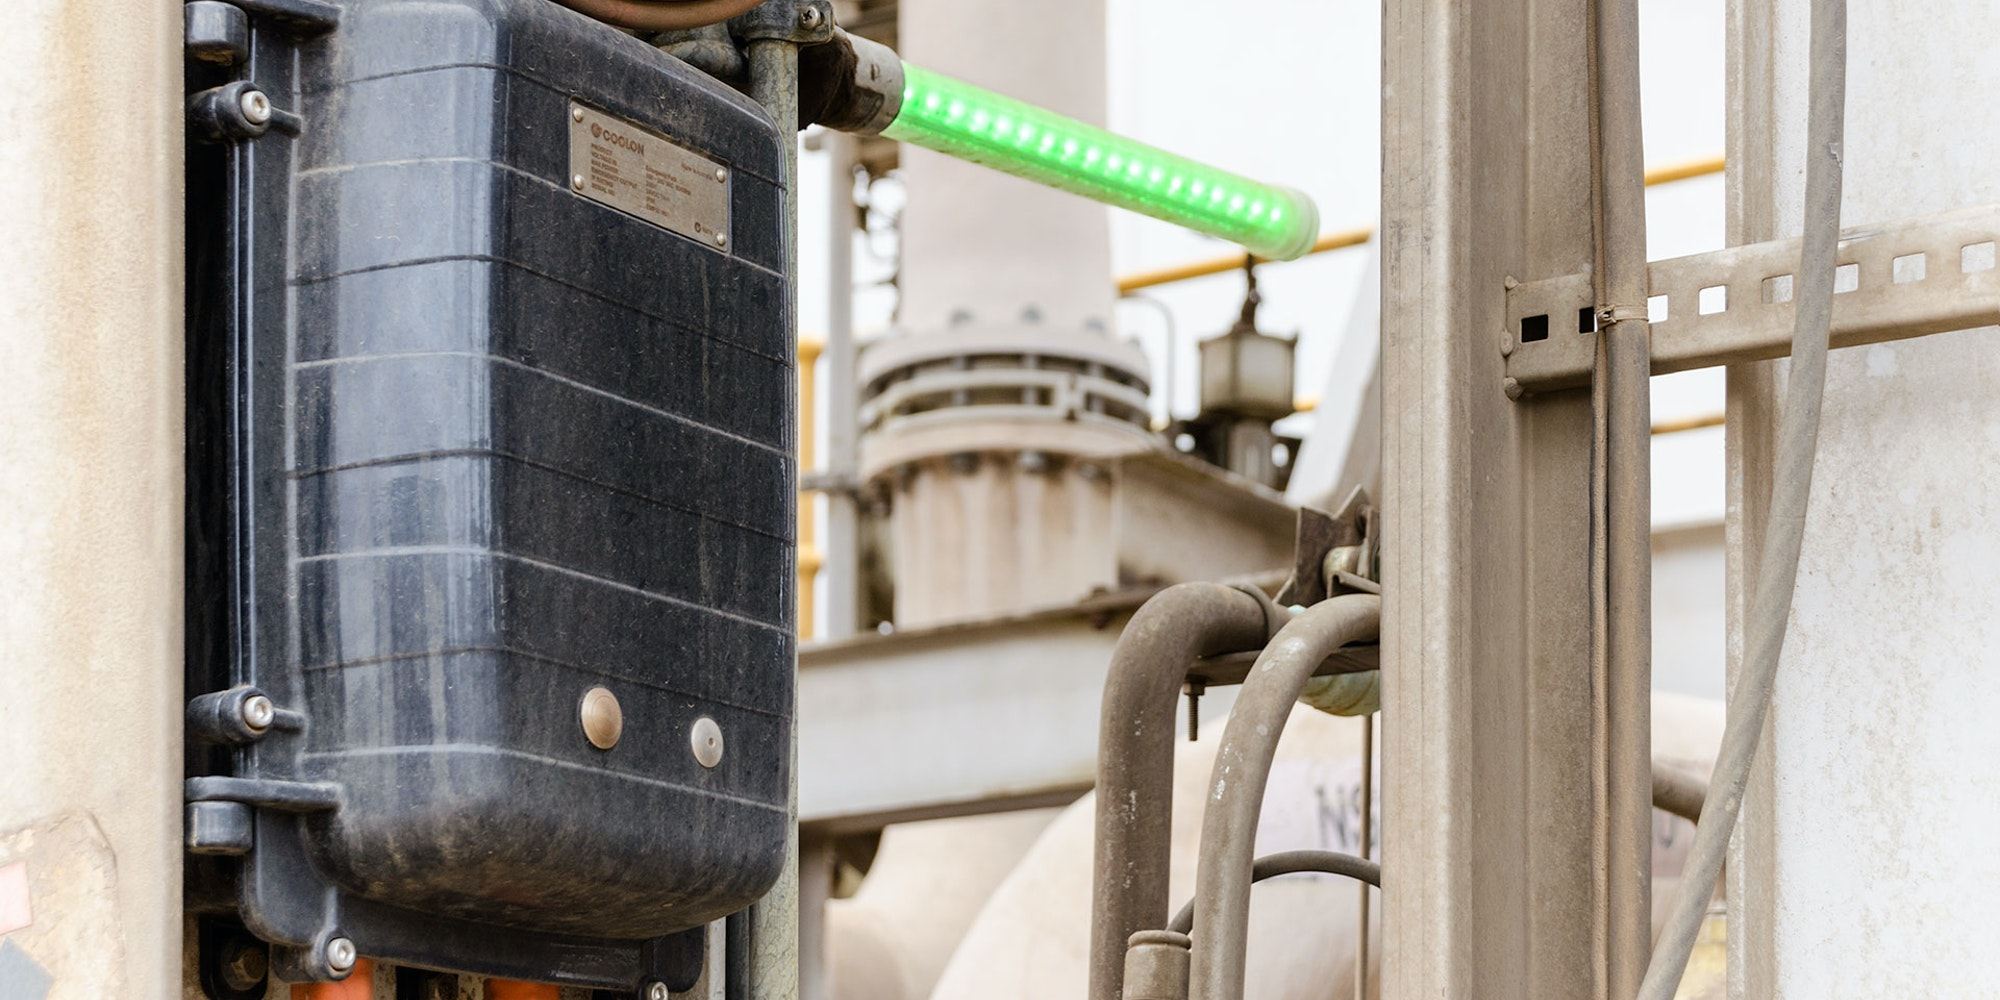 Eye Wash Station LED Safety Beacon Light in application, installed on a gold mine